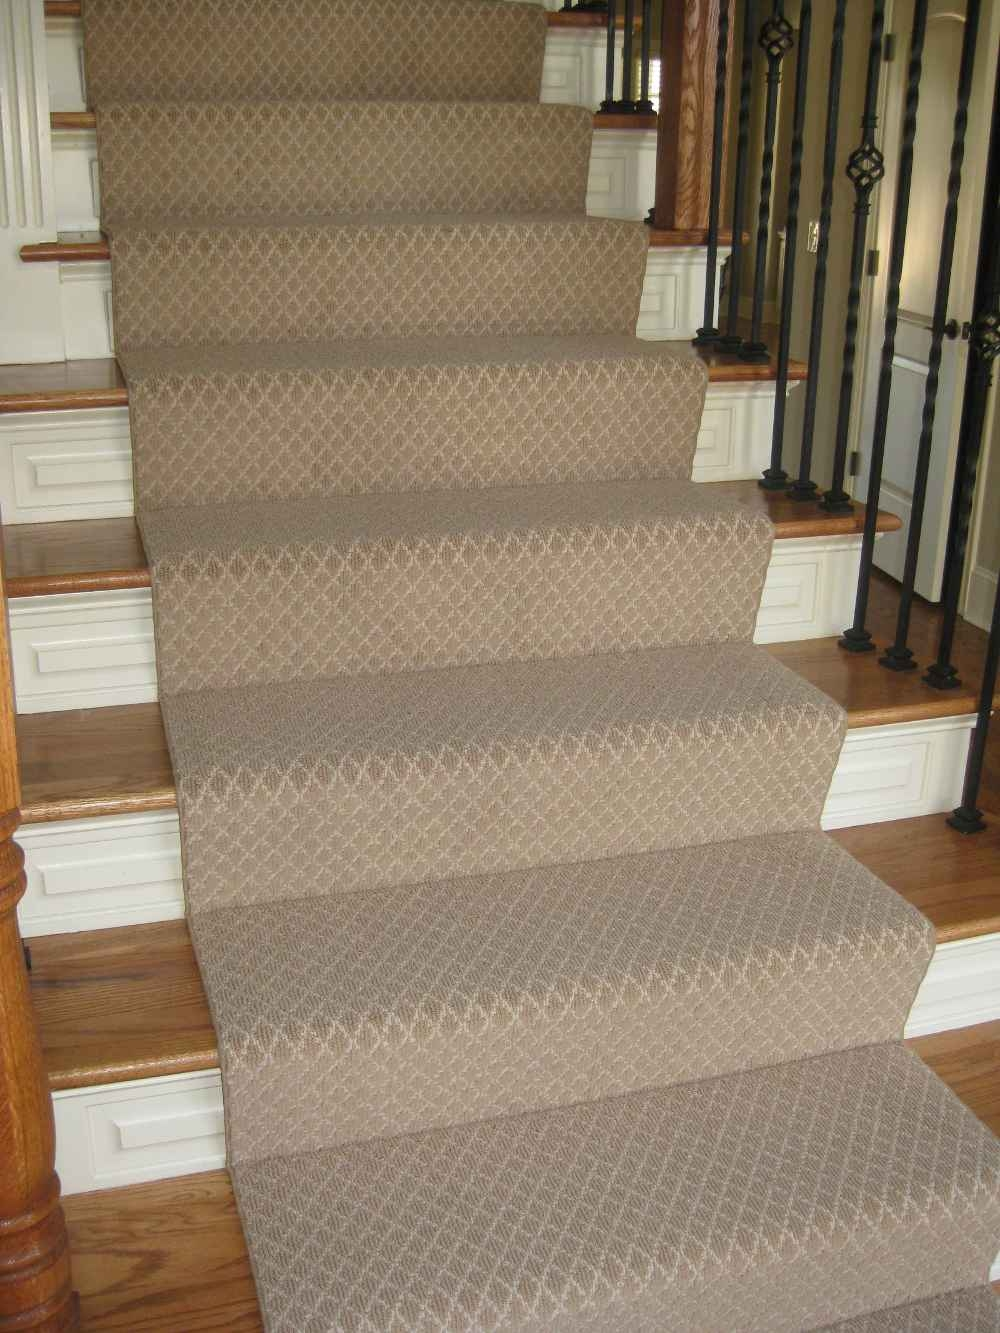 Carpet Stair Runner Roll For Home | Carpet Runners For Carpeted Stairs